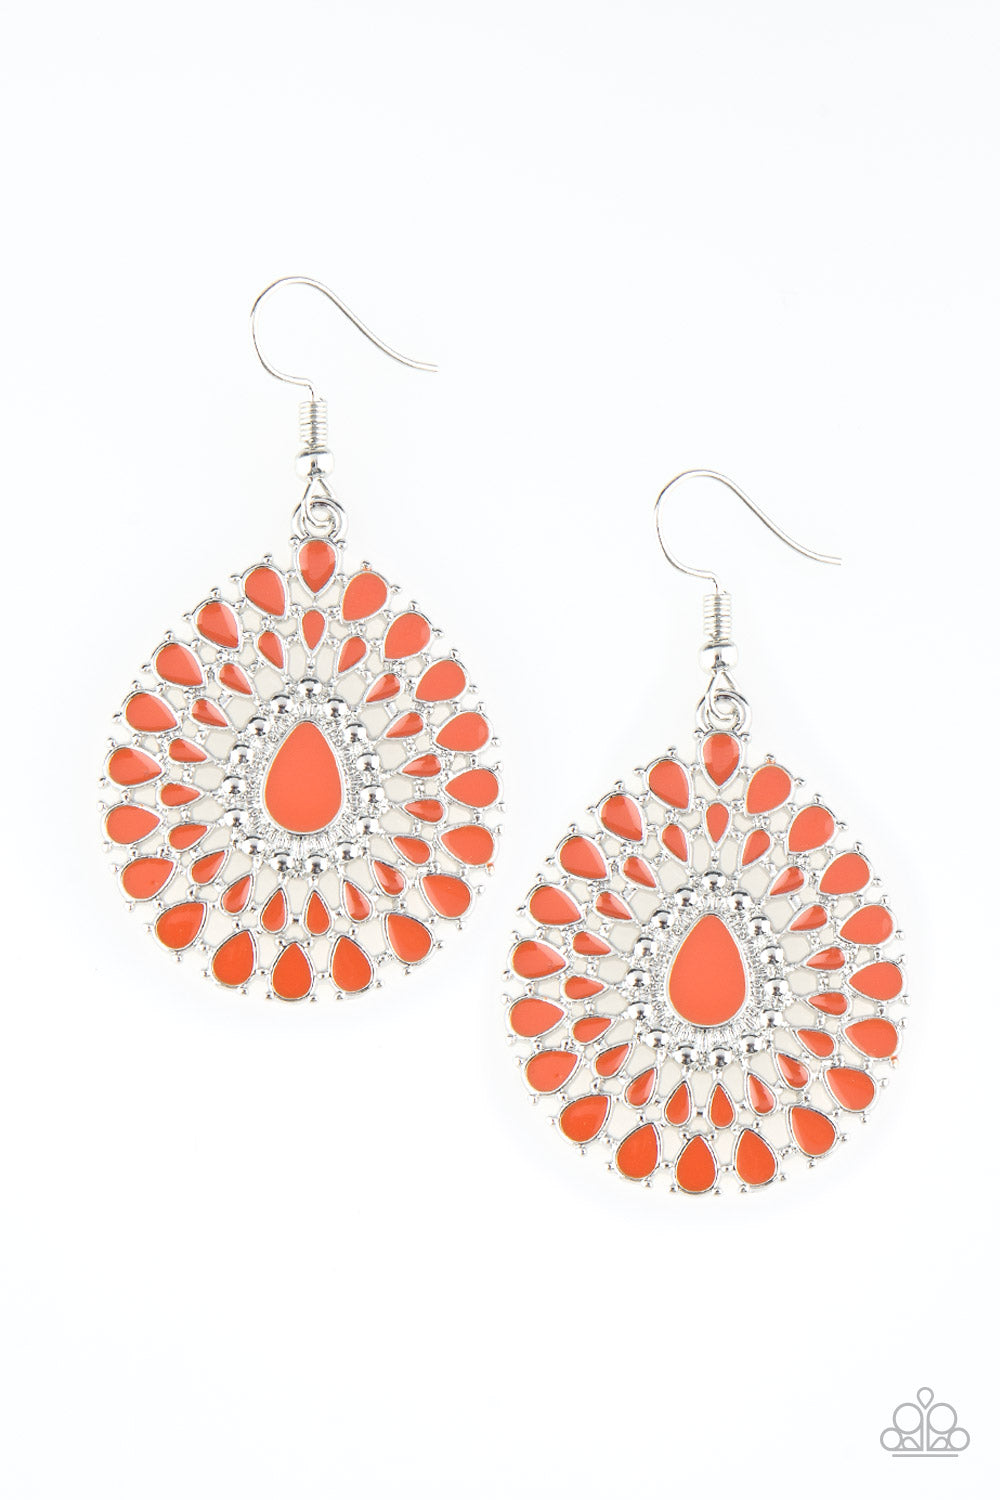 five-dollar-jewelry-city-chateau-orange-earrings-paparazzi-accessories